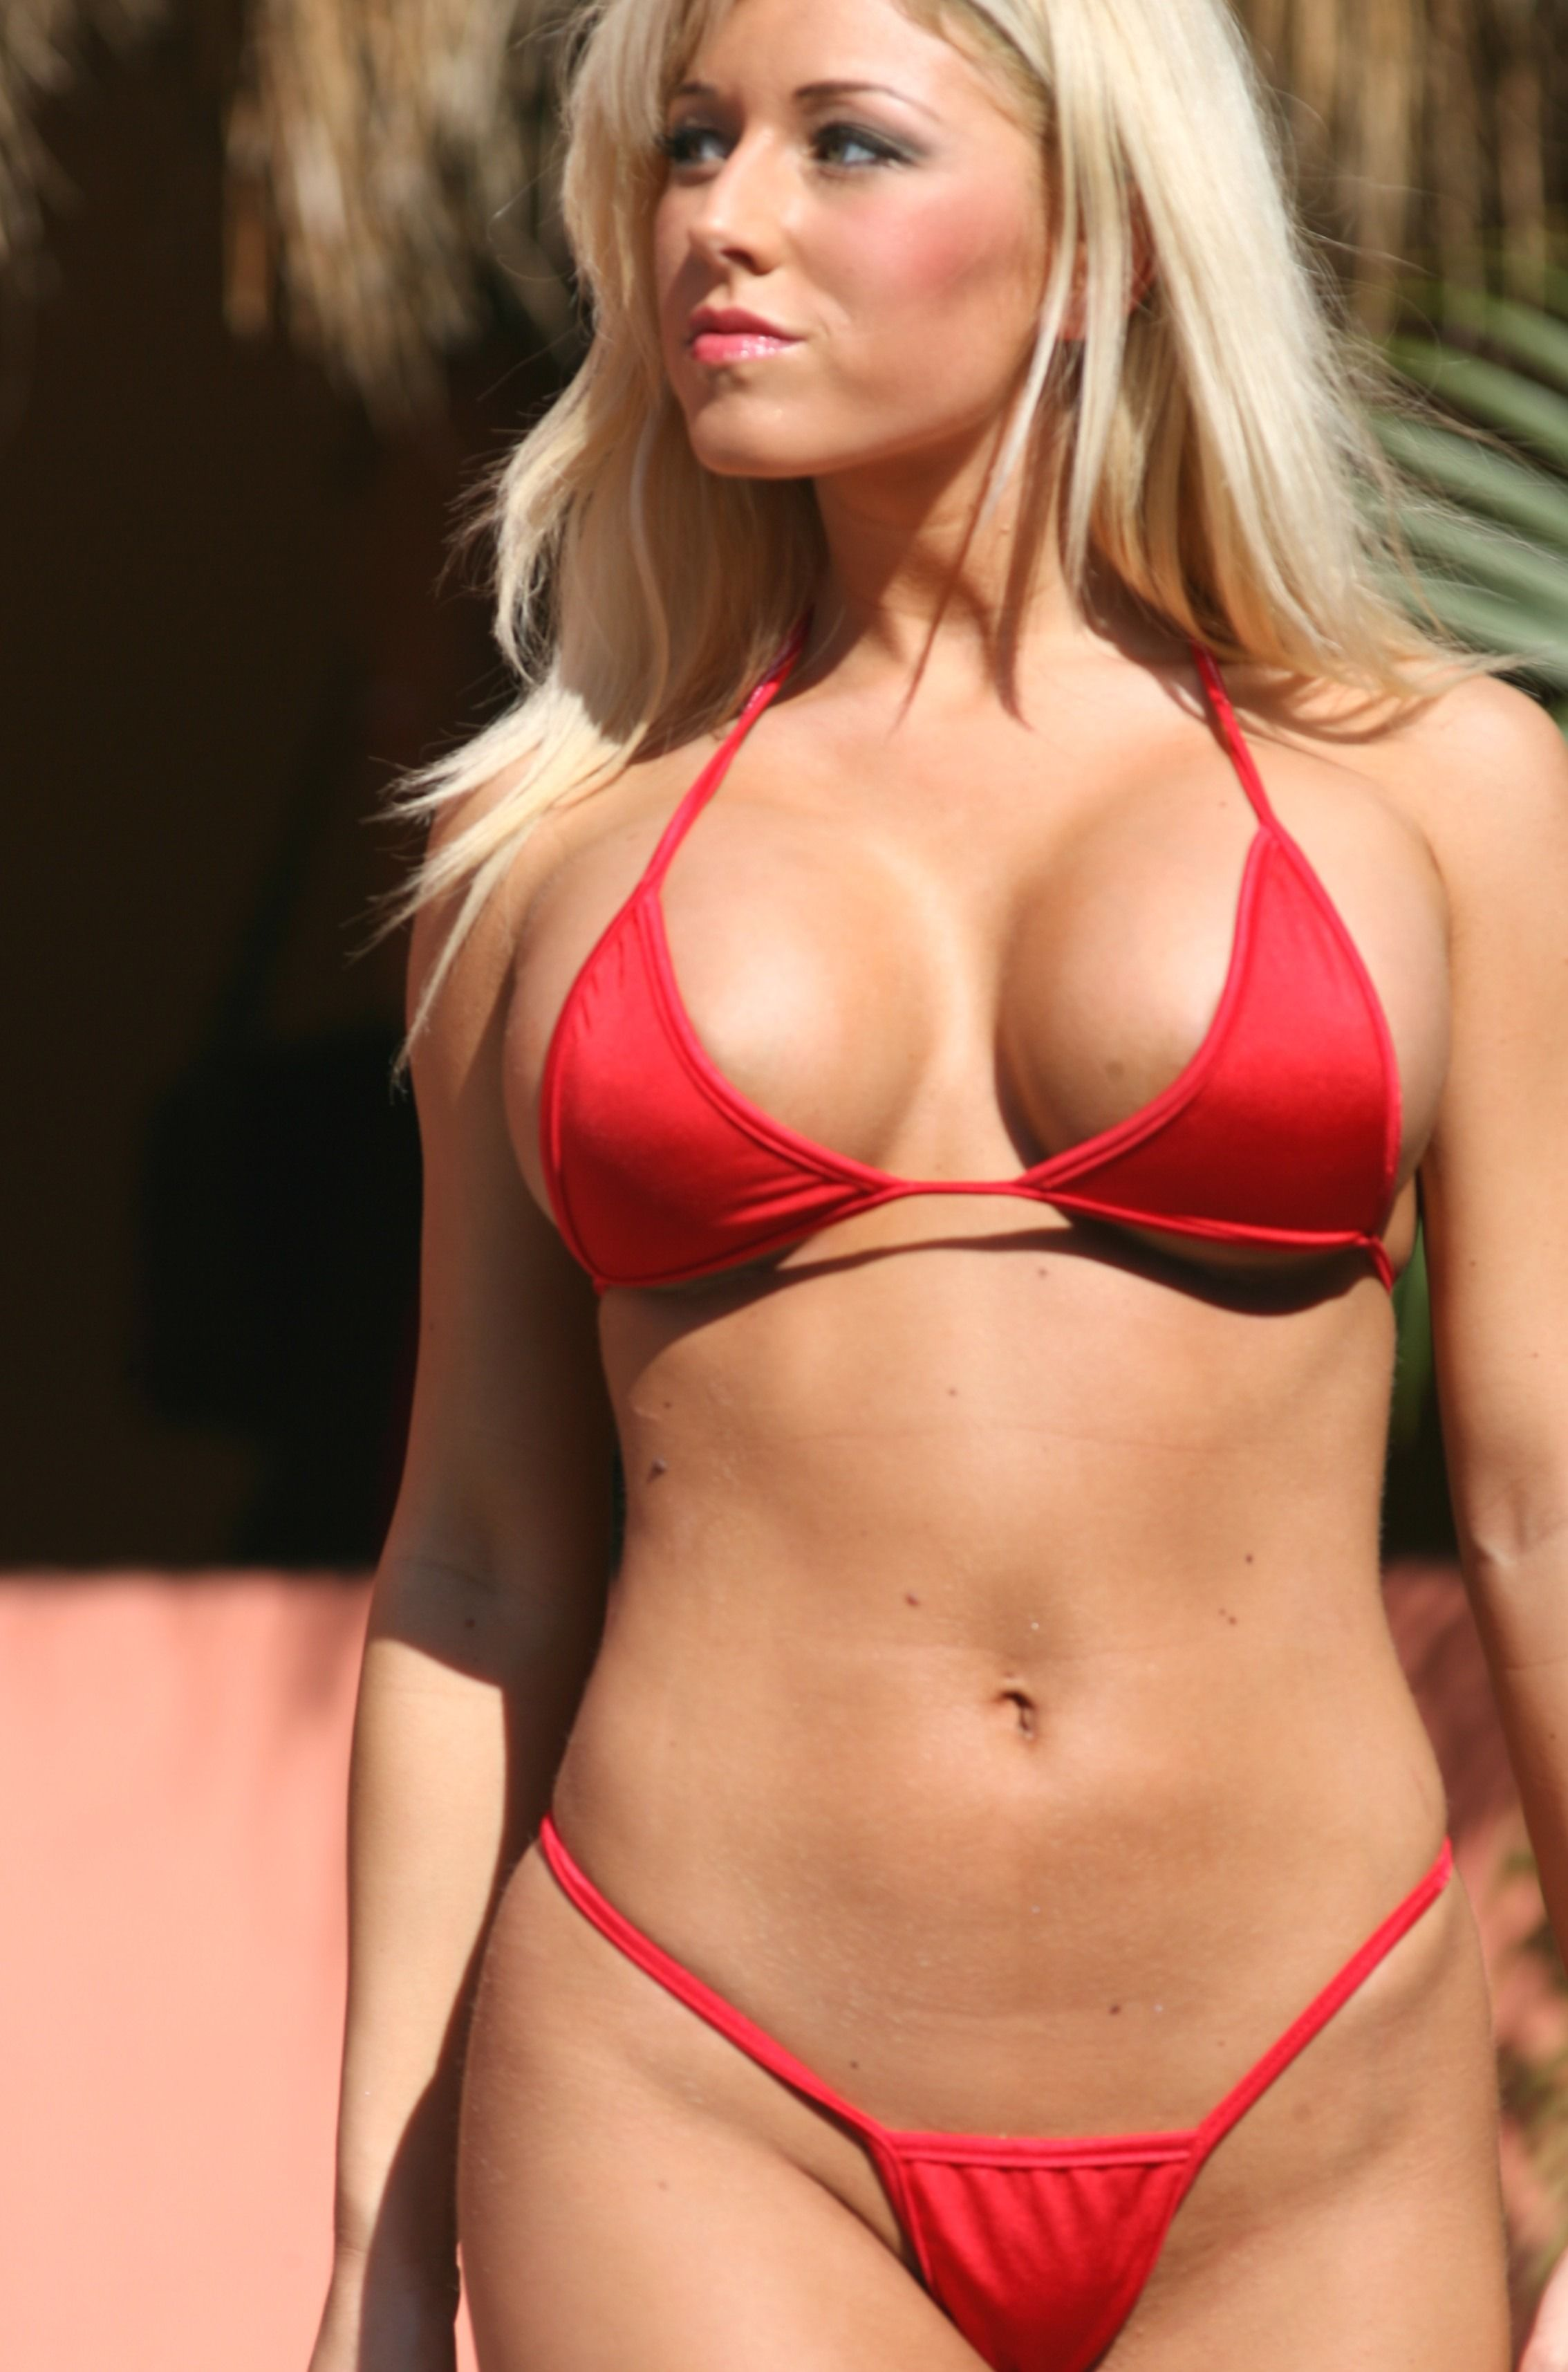 micro bikini photo hd